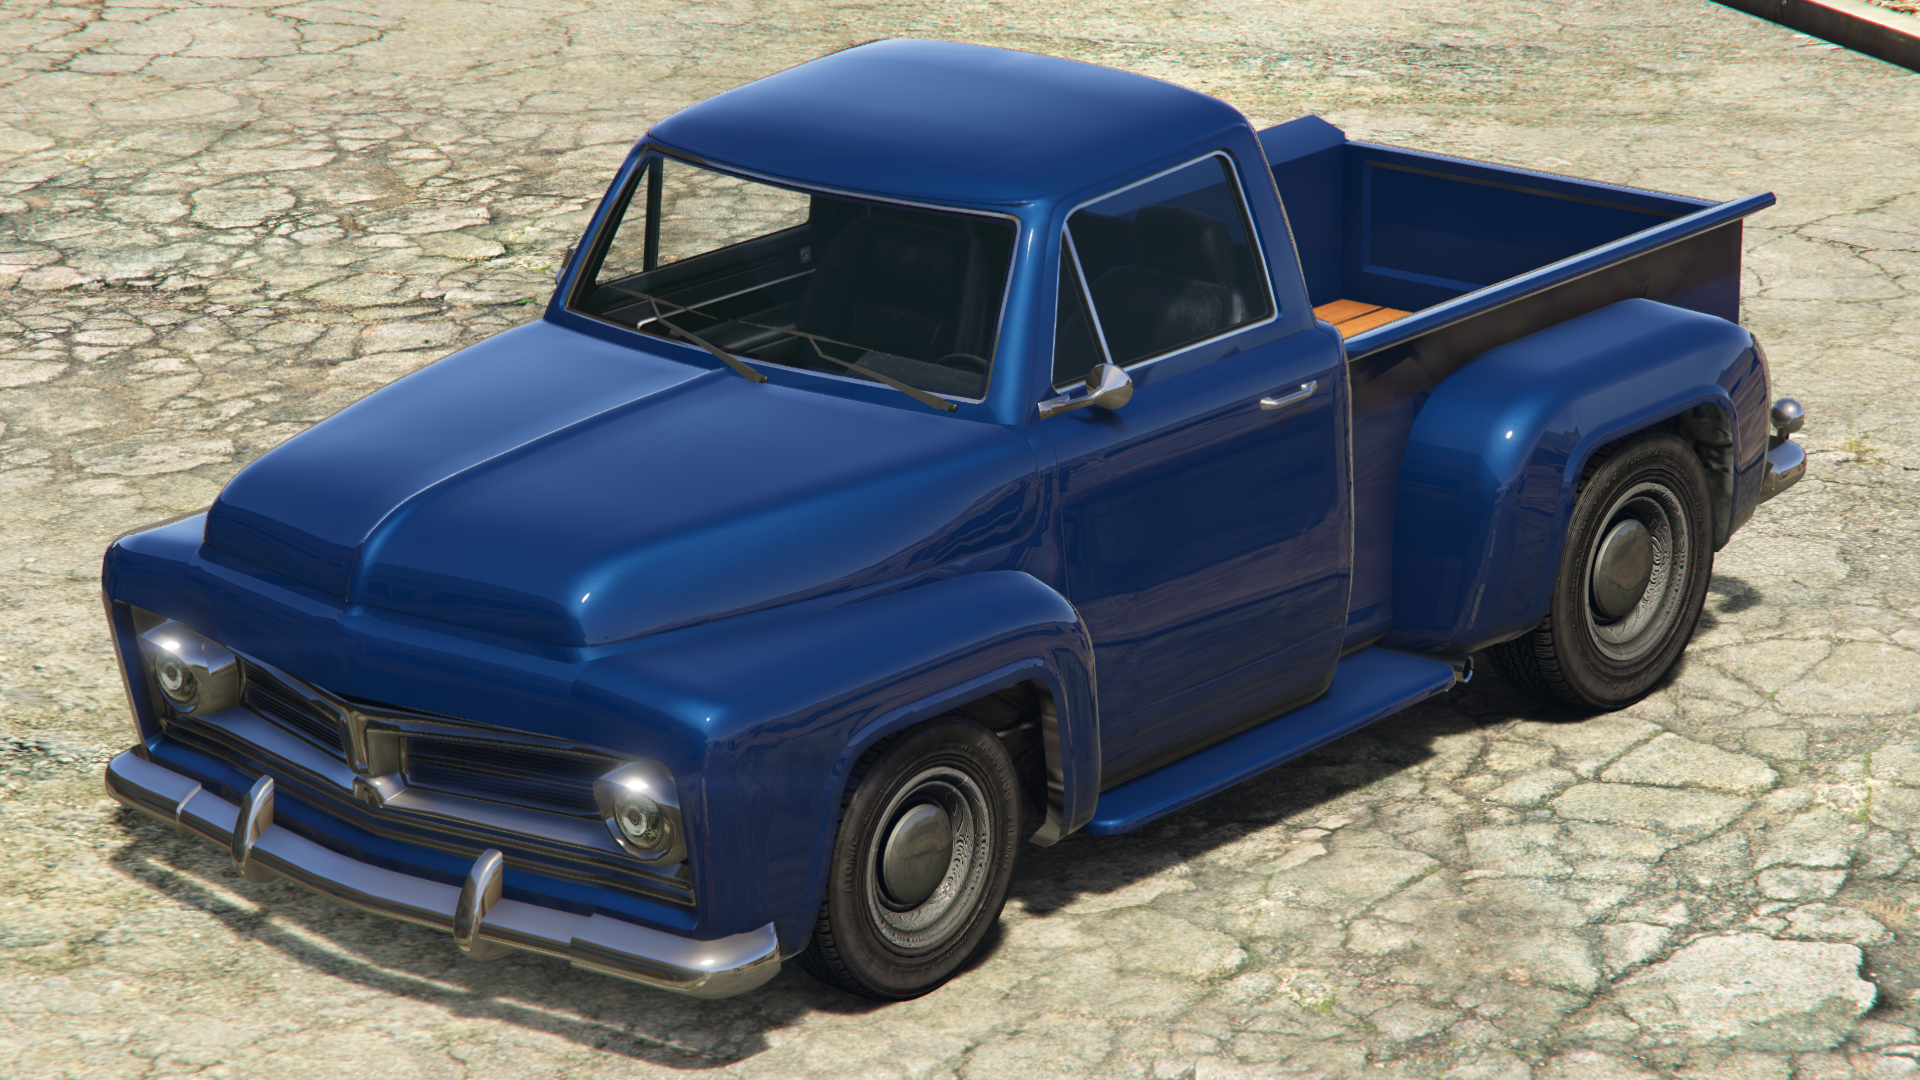 Slamvan | GTA Wiki | FANDOM powered by Wikia